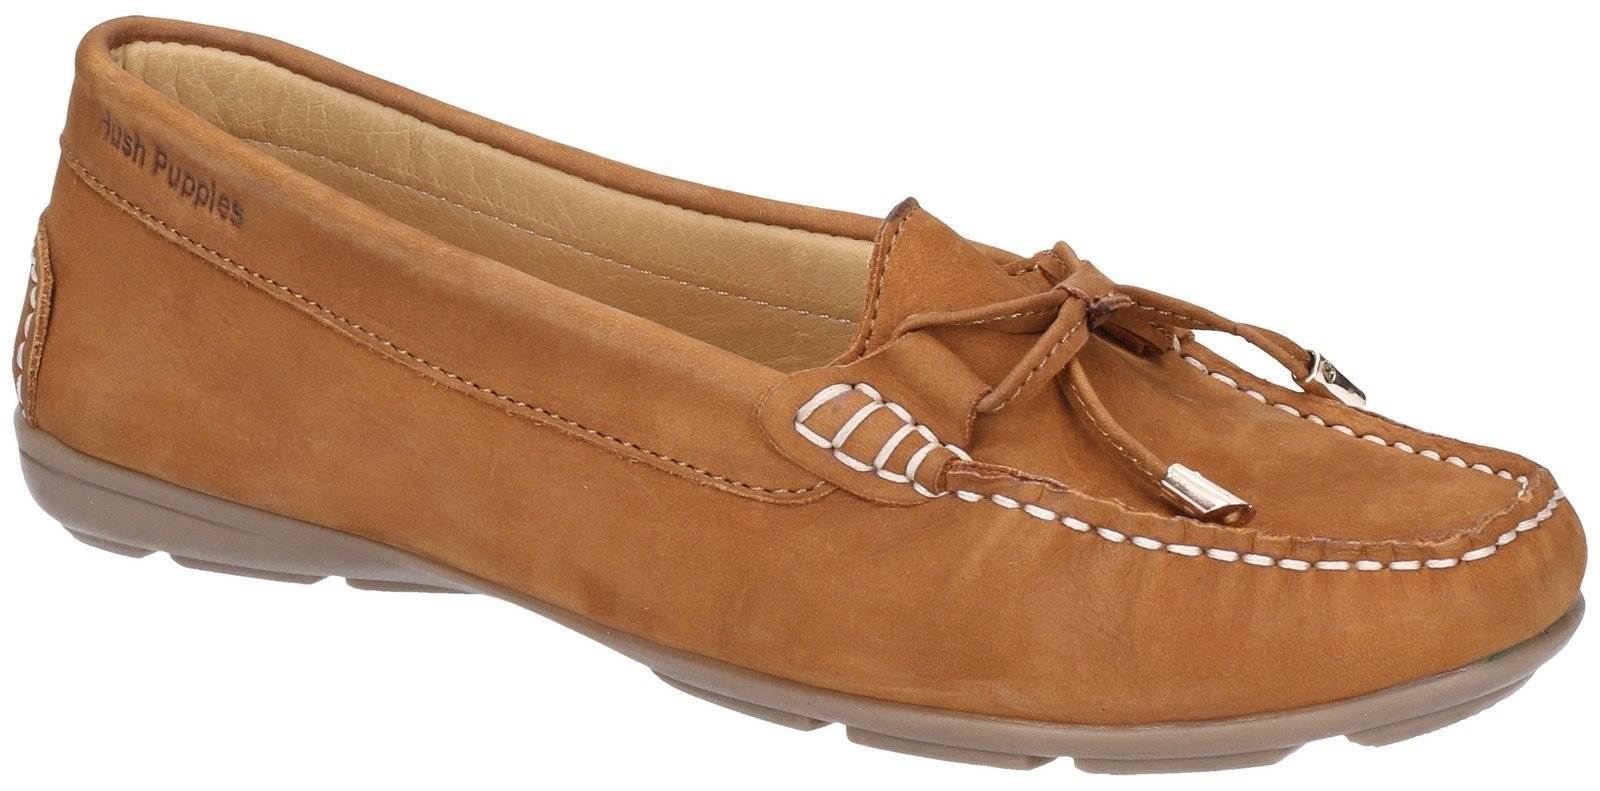 Hush Puppies Women's Maggie Slip On Loafer Shoe Various Colours 28405 - Tan 3